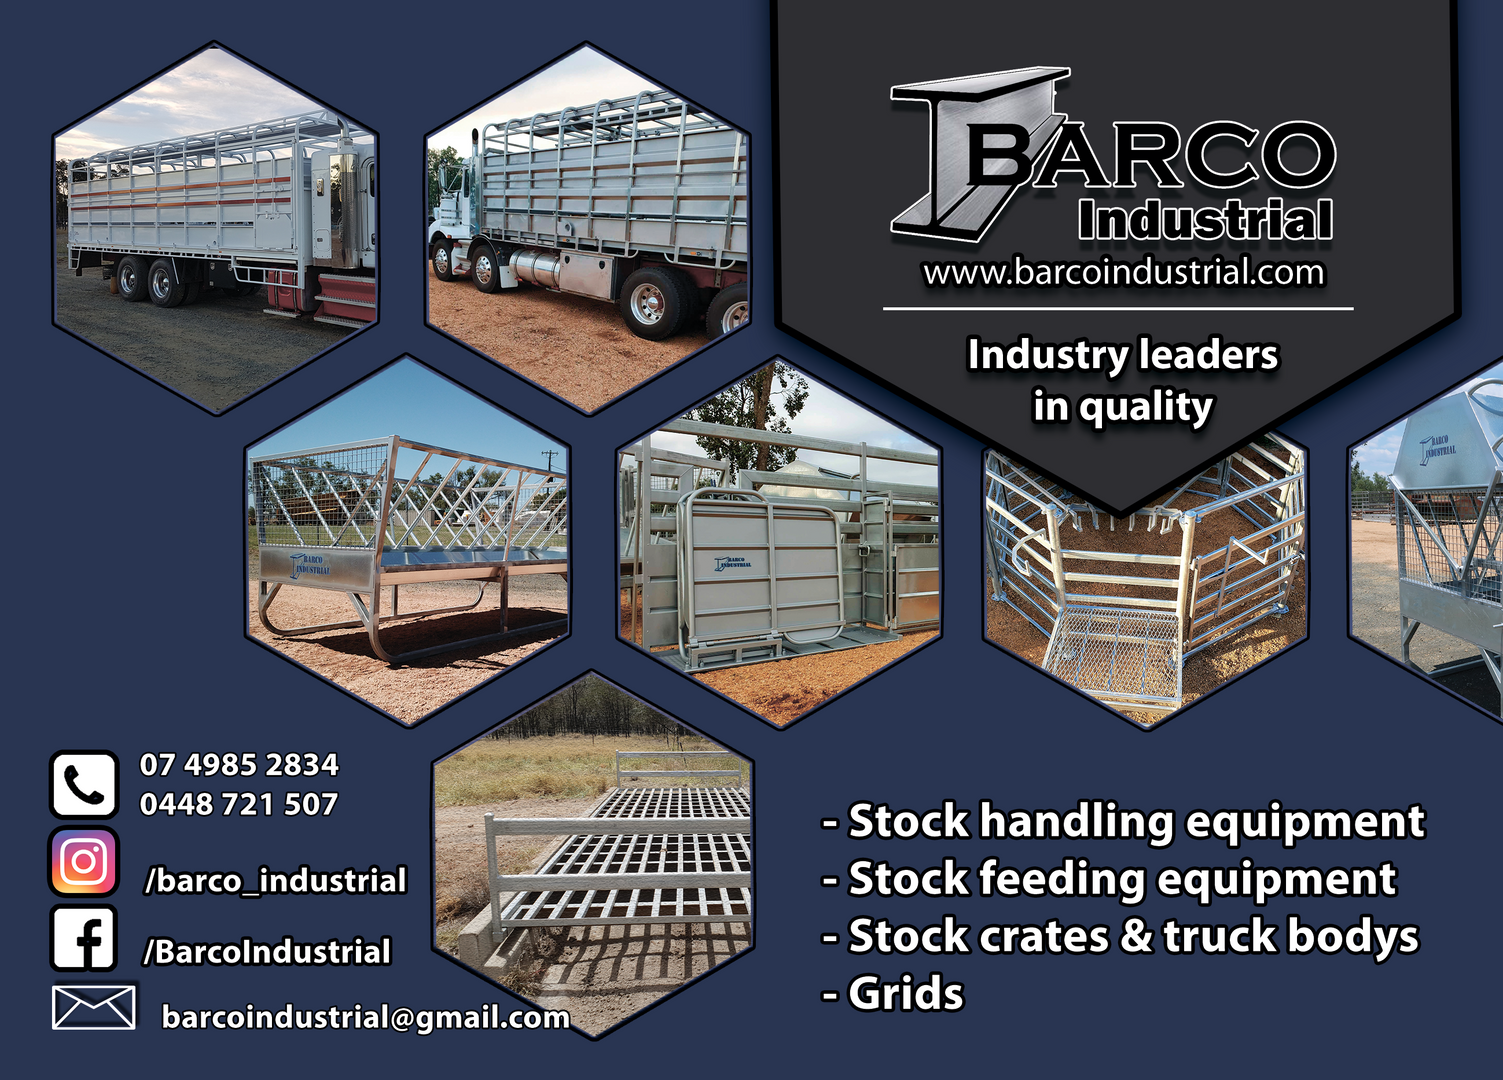 Barco Industrial Page 2.png